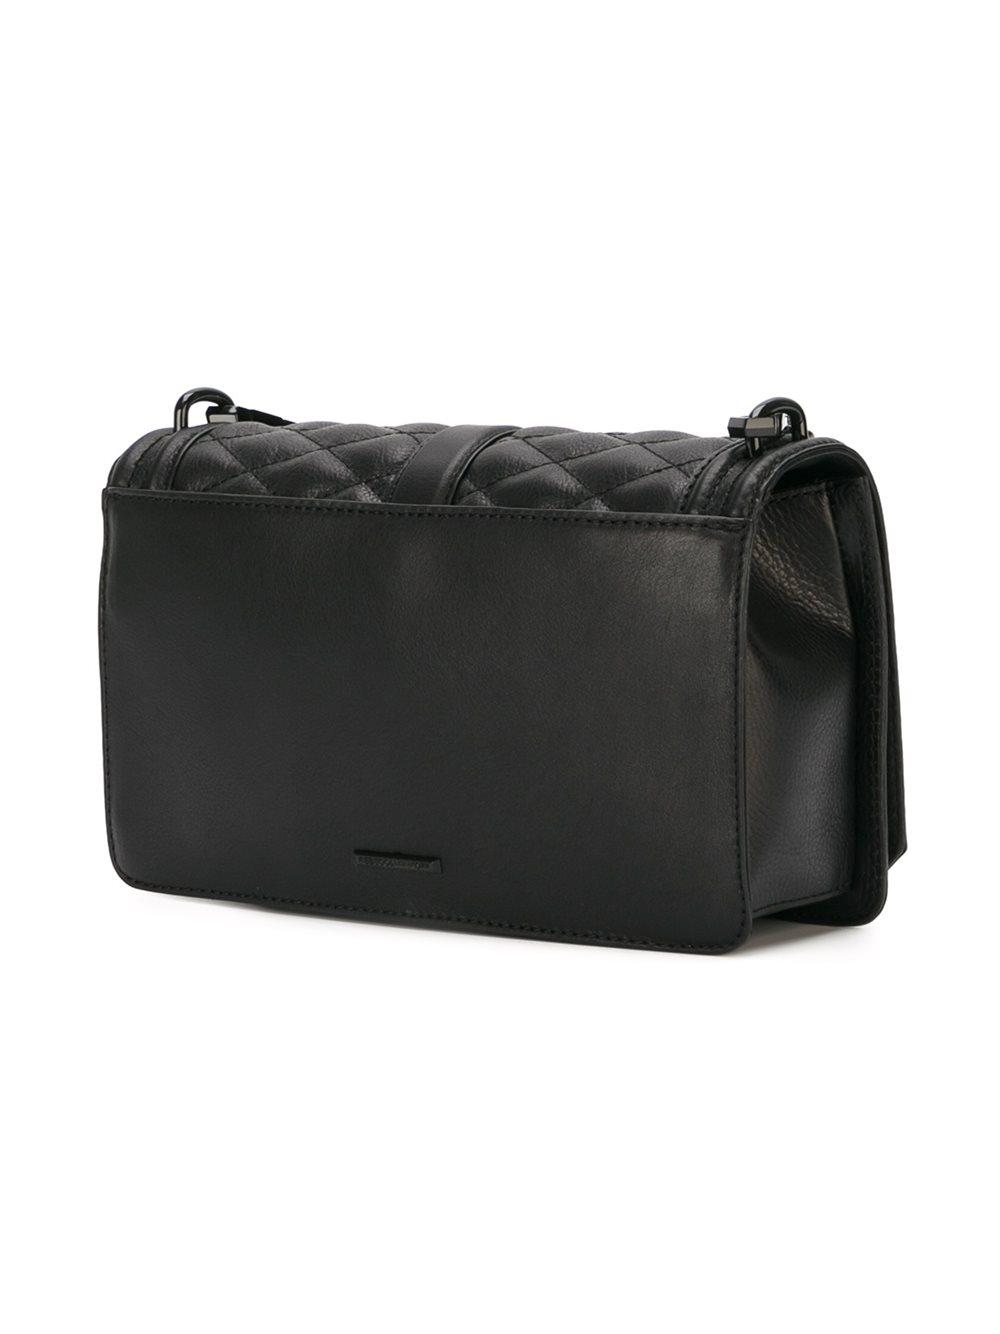 Rebecca Minkoff Love Quilted Crossbody Bag In Black Lyst